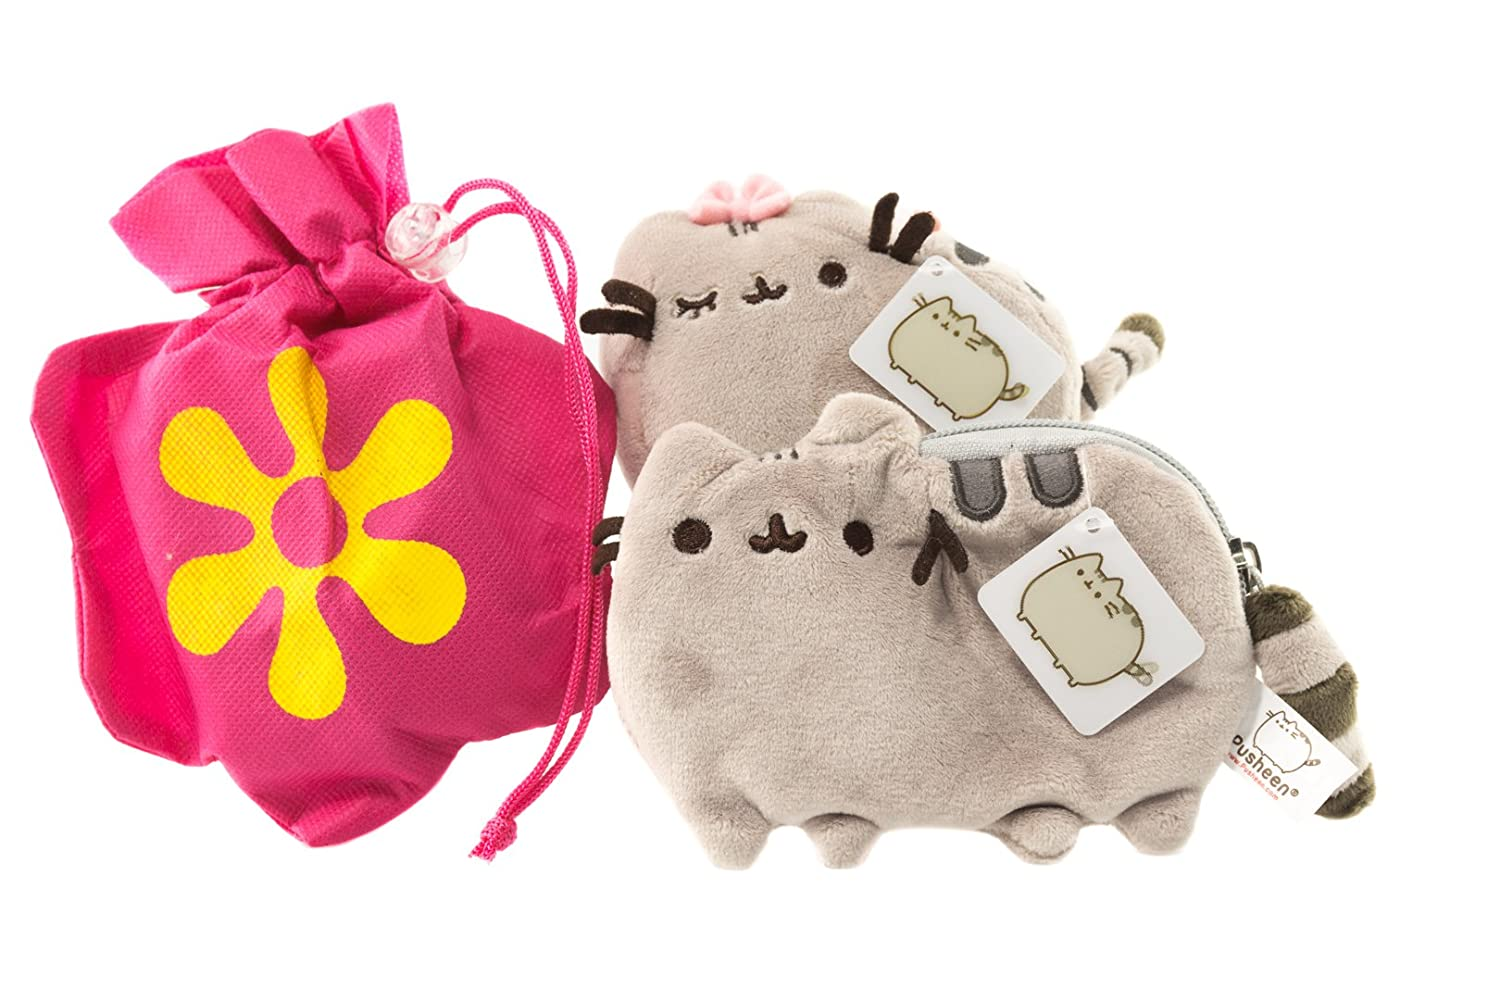 """Pusheen Plush Wristlet and Pusheen Bow Backpack Clip Gift Combo With Reusable Woven Tote Bag 8 Pusheen zip-close Wristlet and 4.5/"""" Pusheen Bow Backpack Clip with Tote Pusheen Gift Combo"""